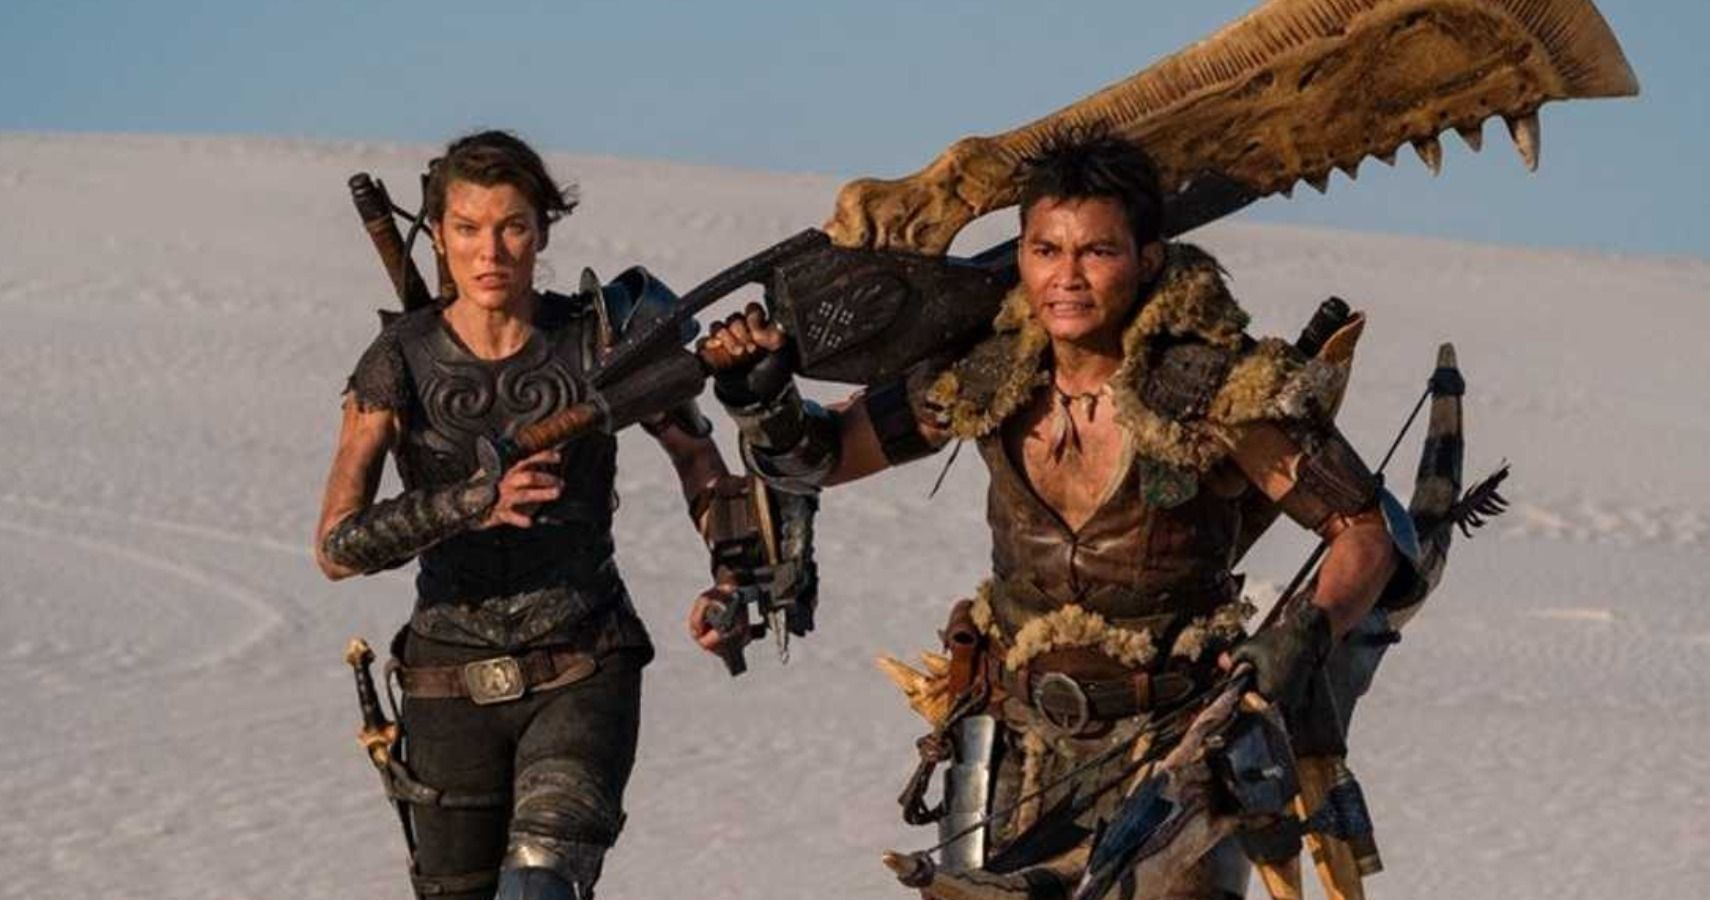 The Monster Hunter Movie Synopsis Sure Makes It Sound Rubbish